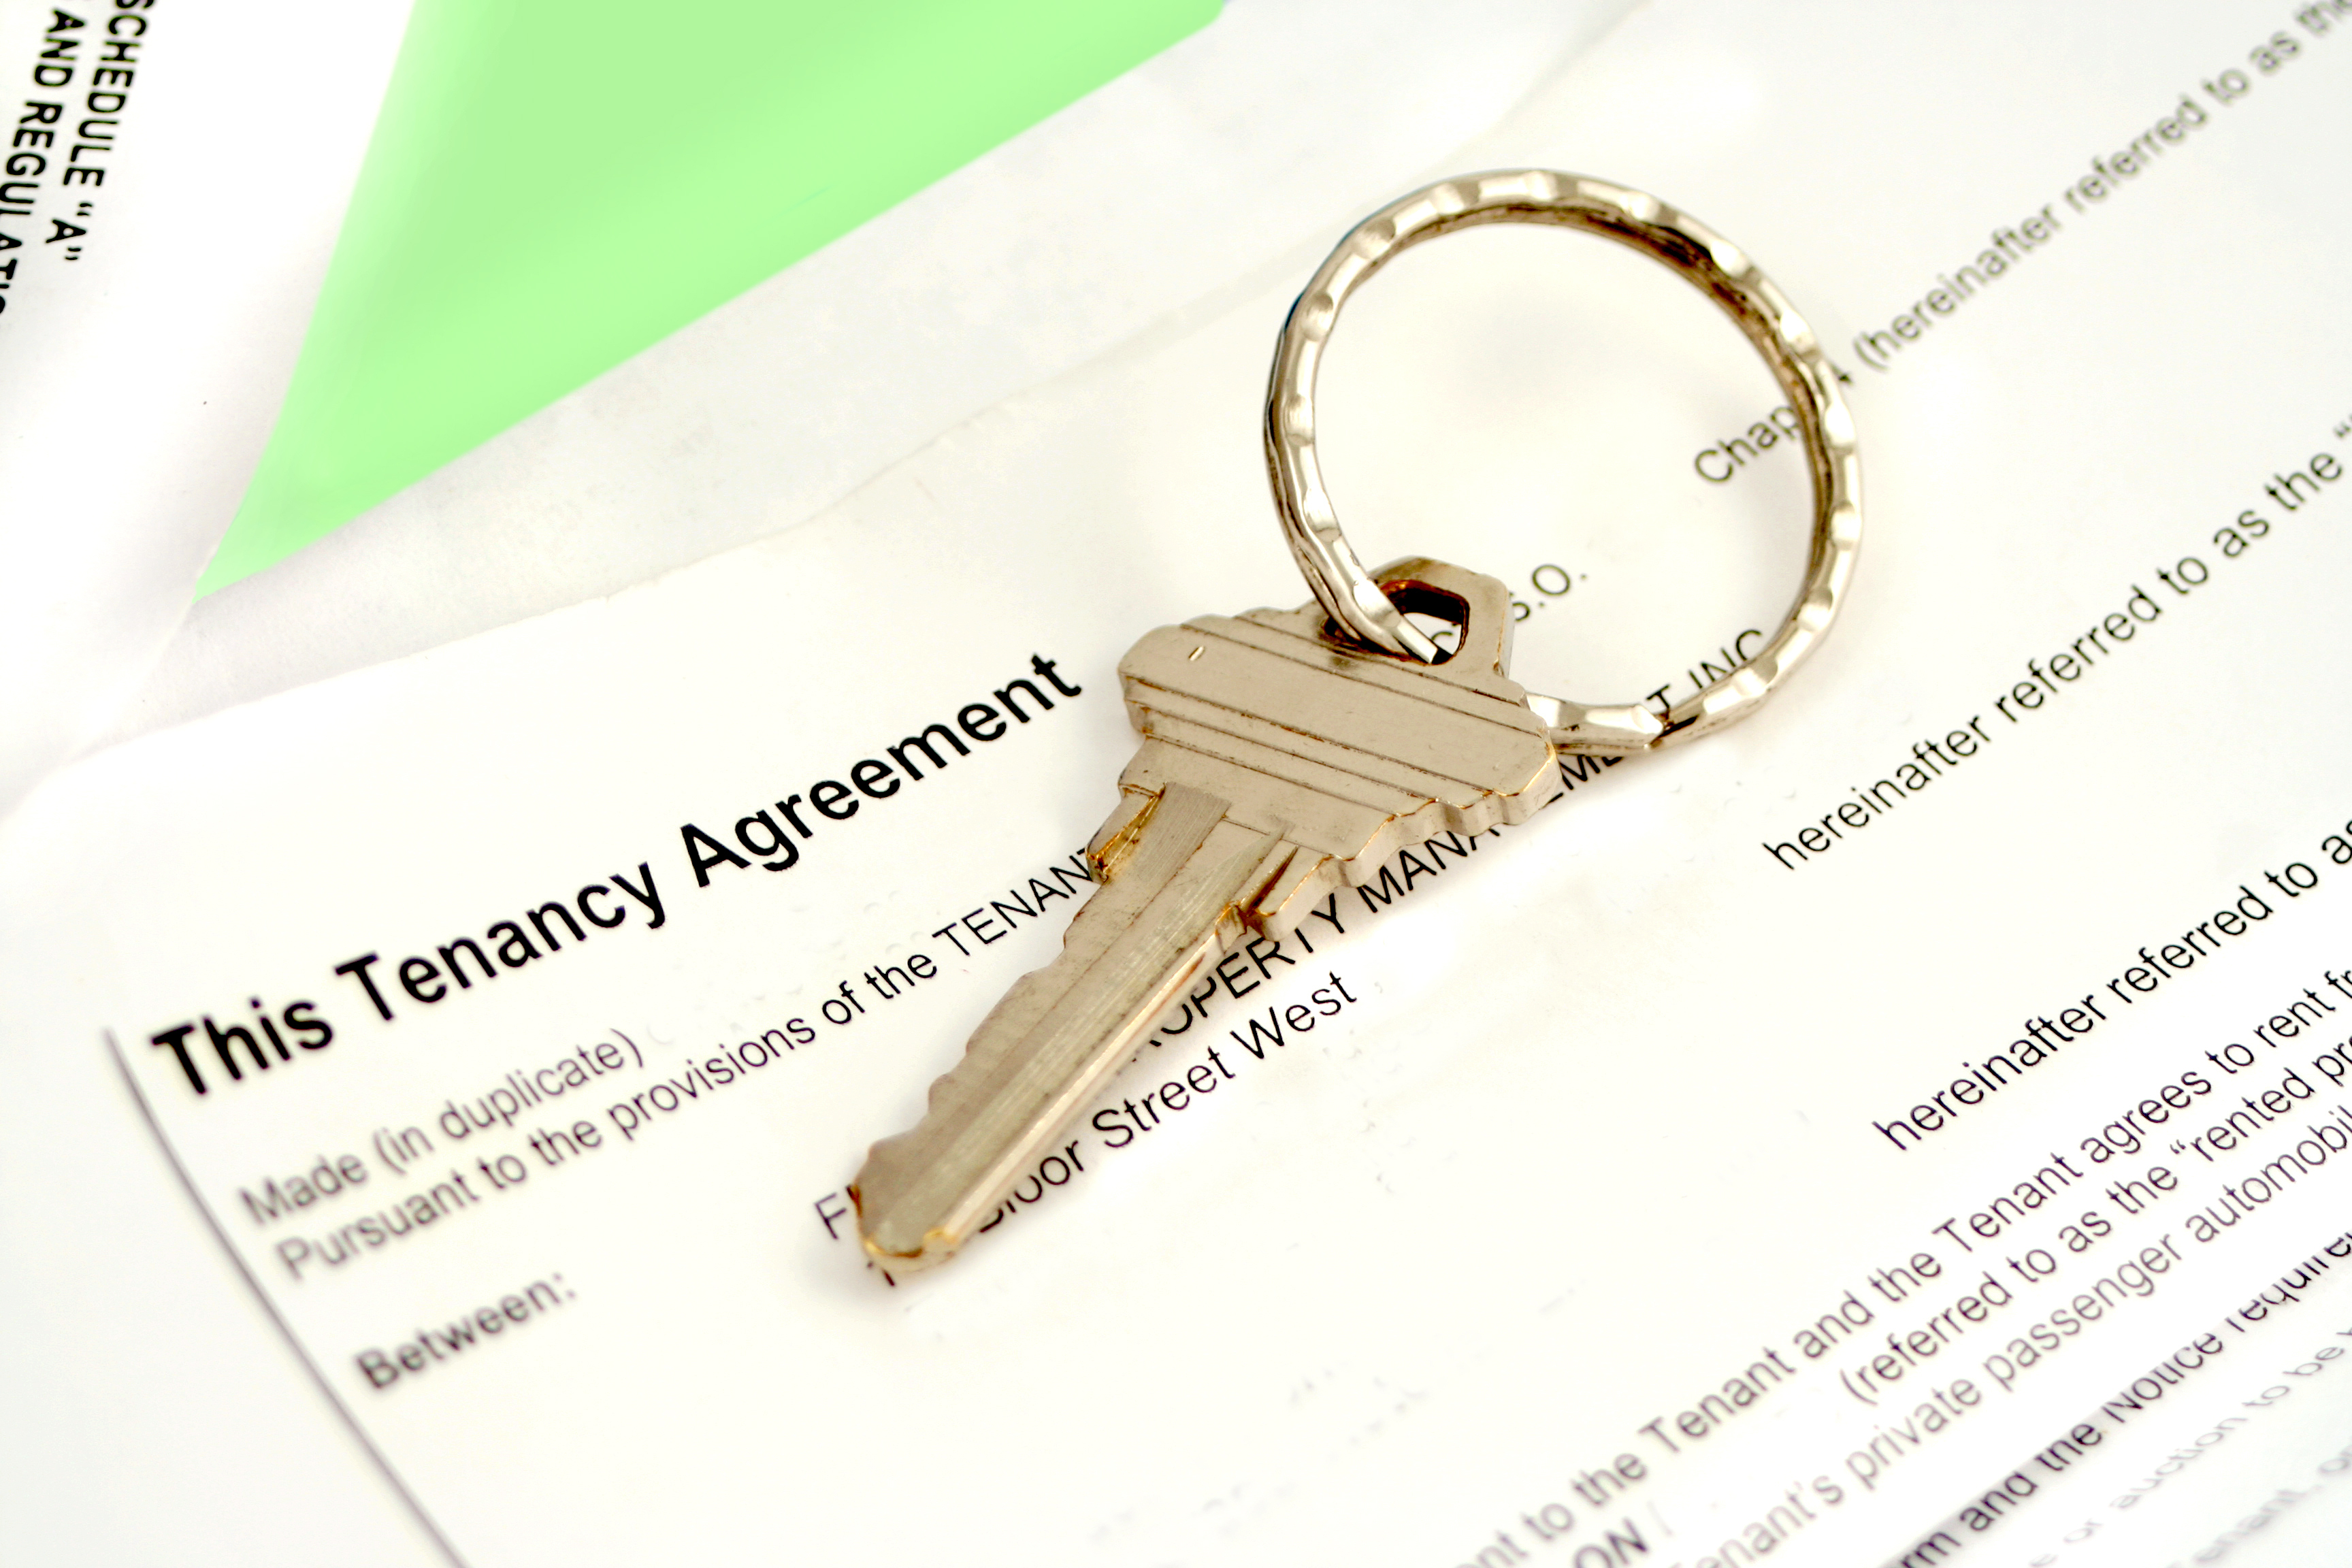 tenancy contract